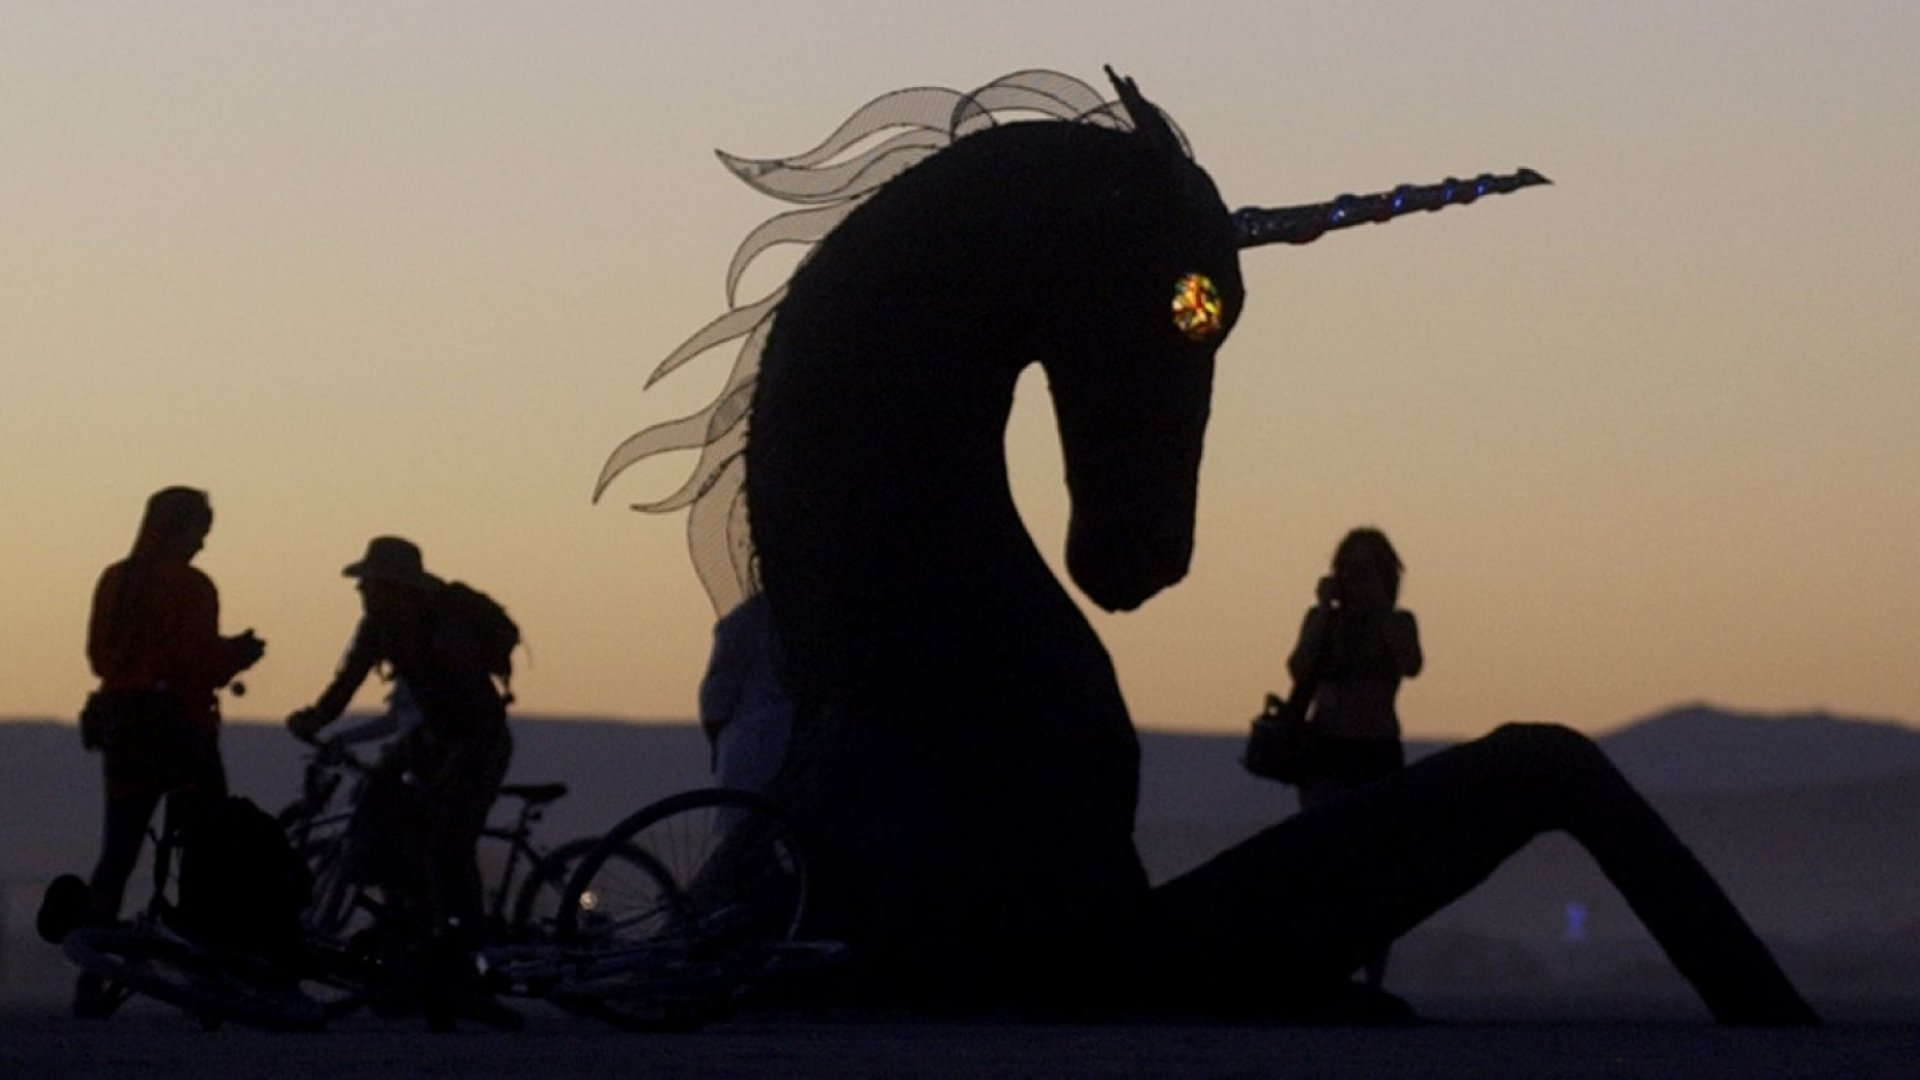 7 Things I Wish I'd Known Before Going to Burning Man